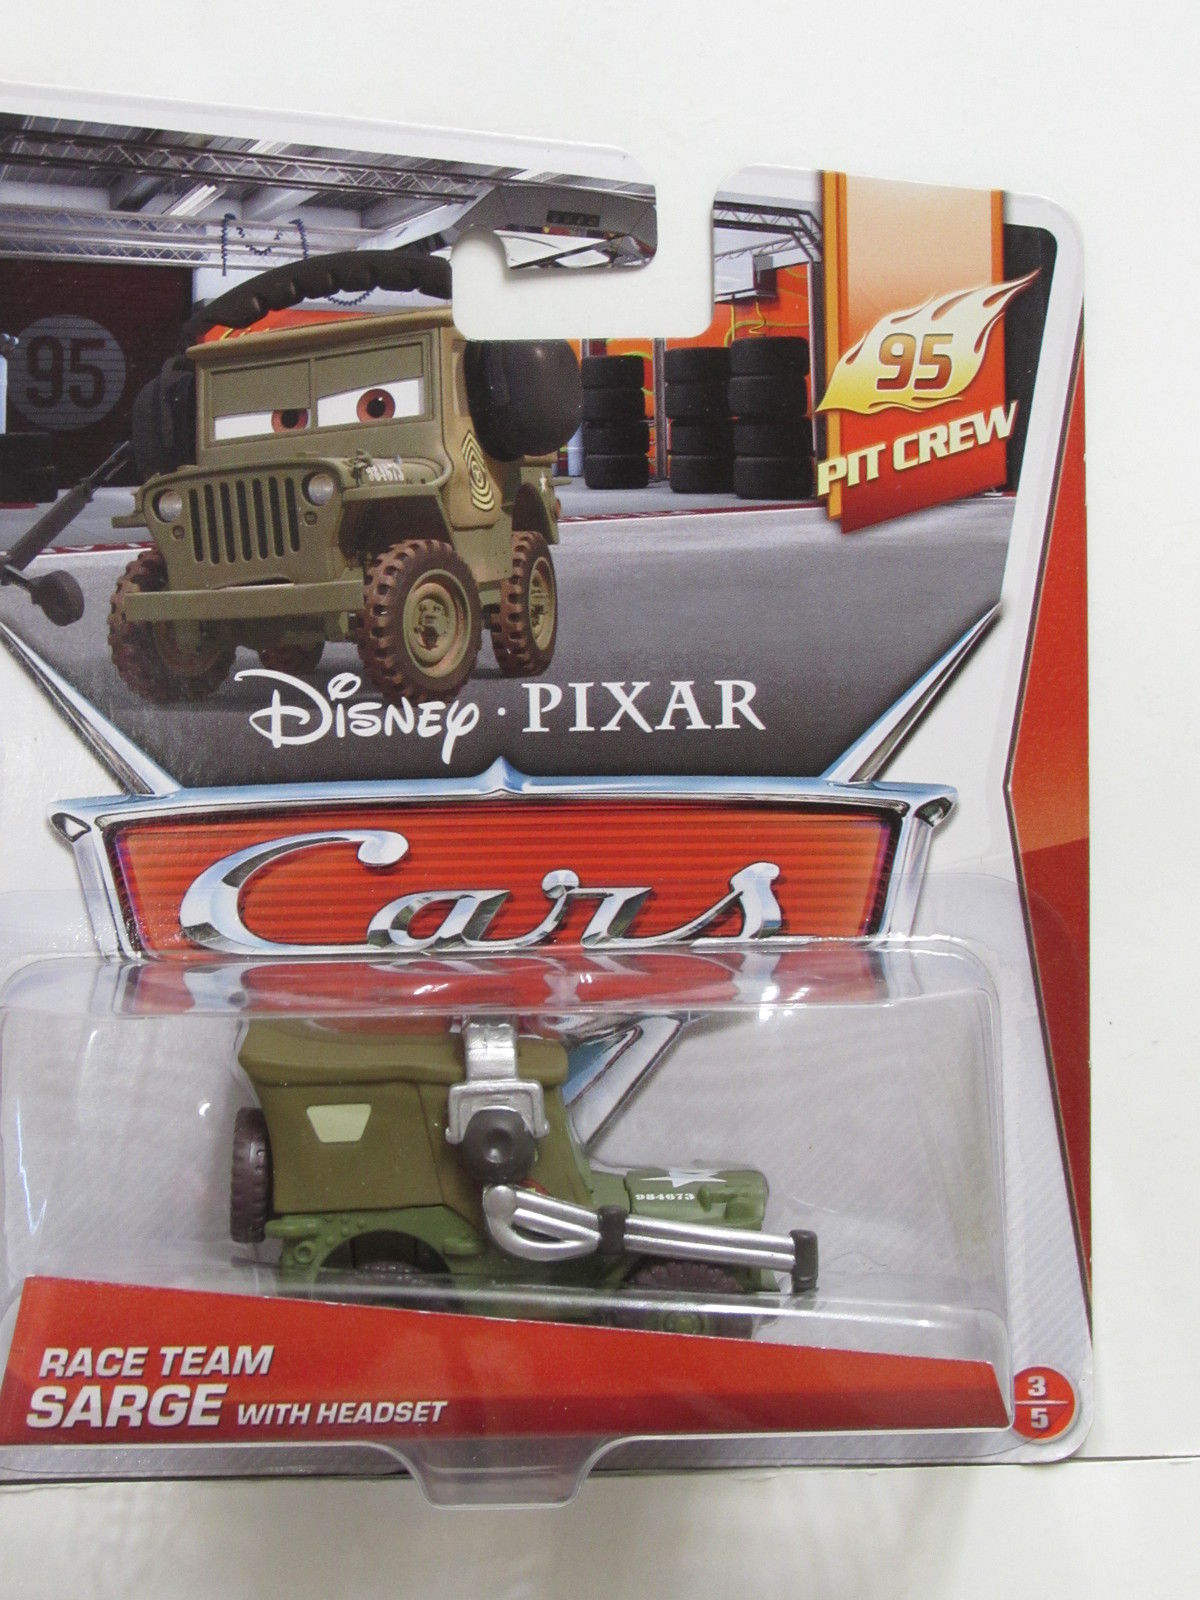 DISNEY PIXAR CARS PIT CREW RACE TEAM SARGE WITH HEADSET